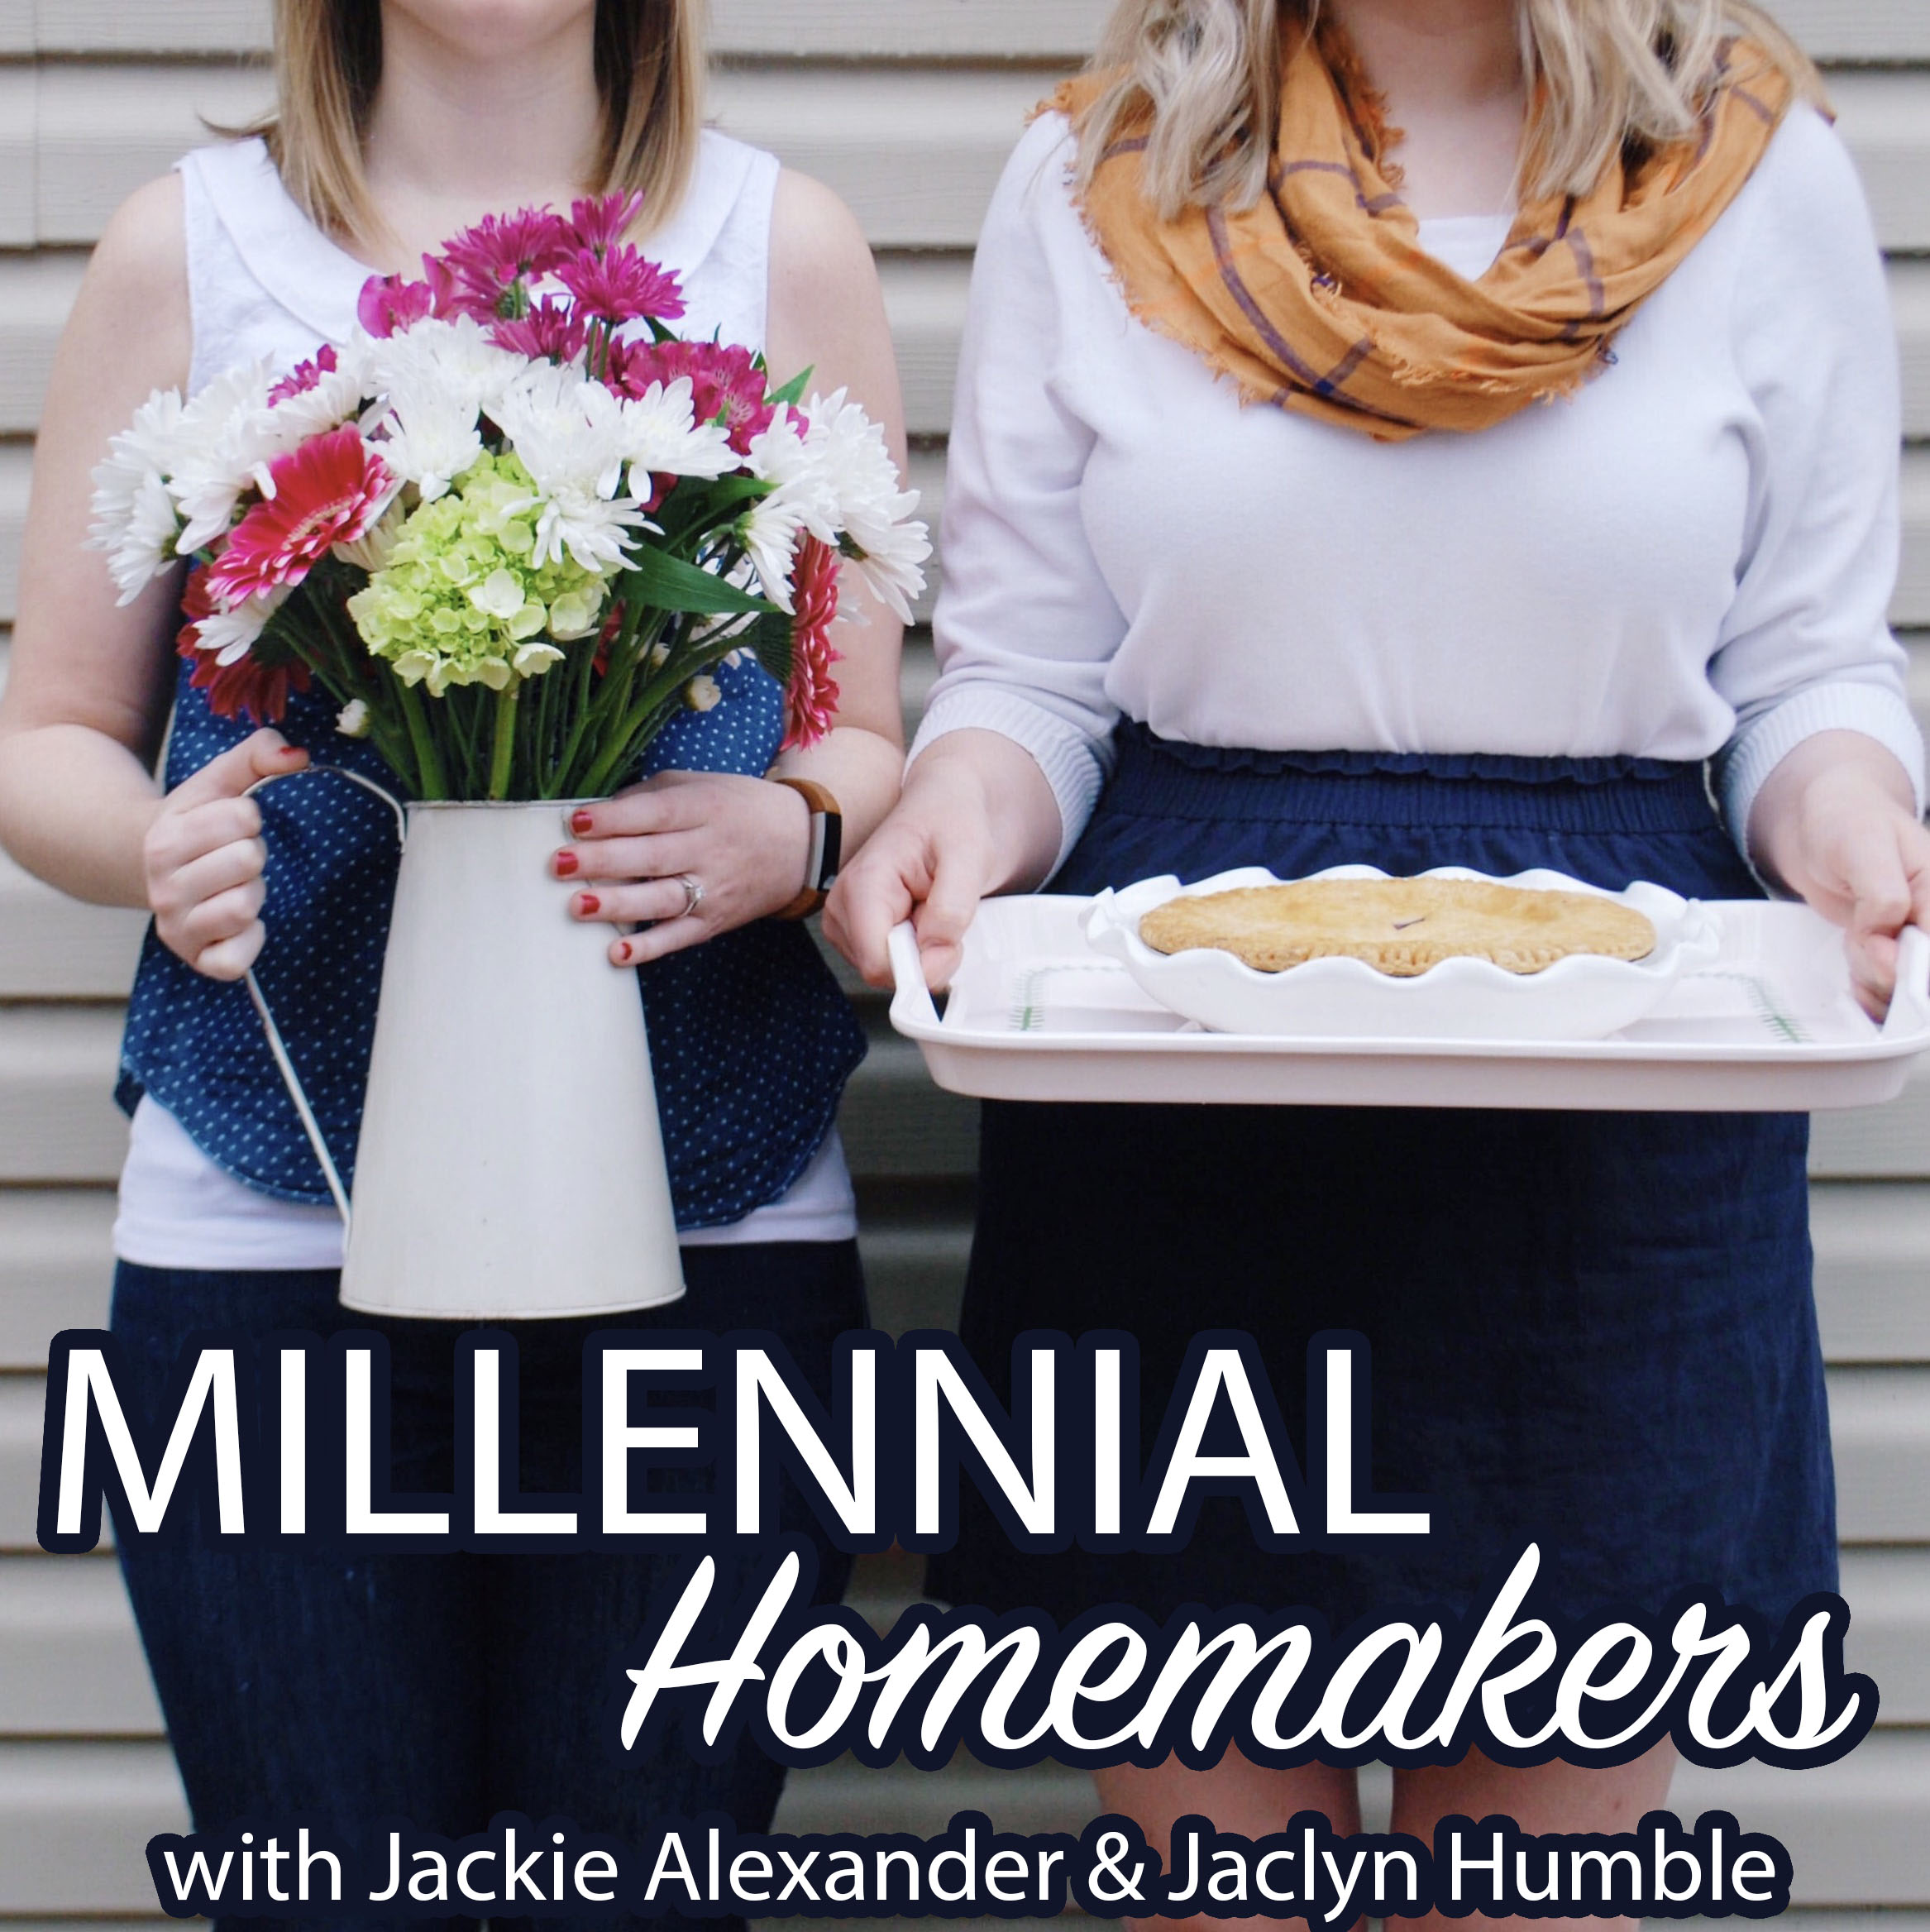 S3E13 Why Millennials Should Care About Homemaking